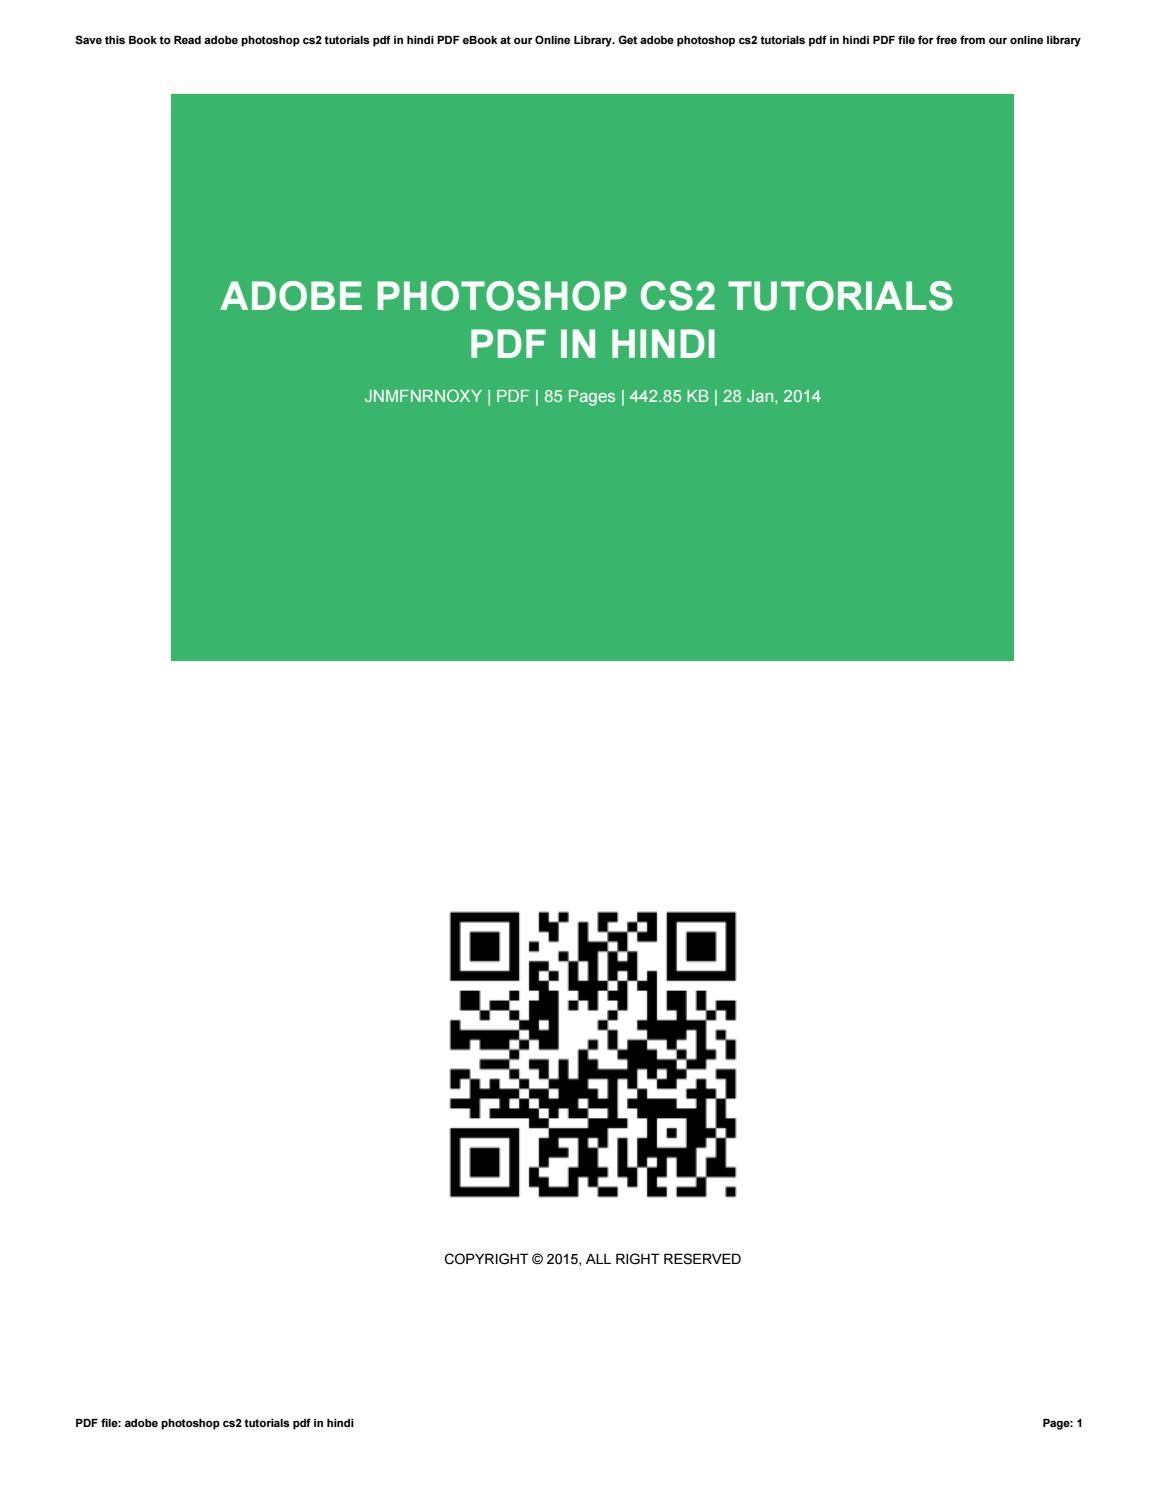 Adobe photoshop cs2 tutorials pdf in hindi by KristopherAhlstrom2093 - issuu